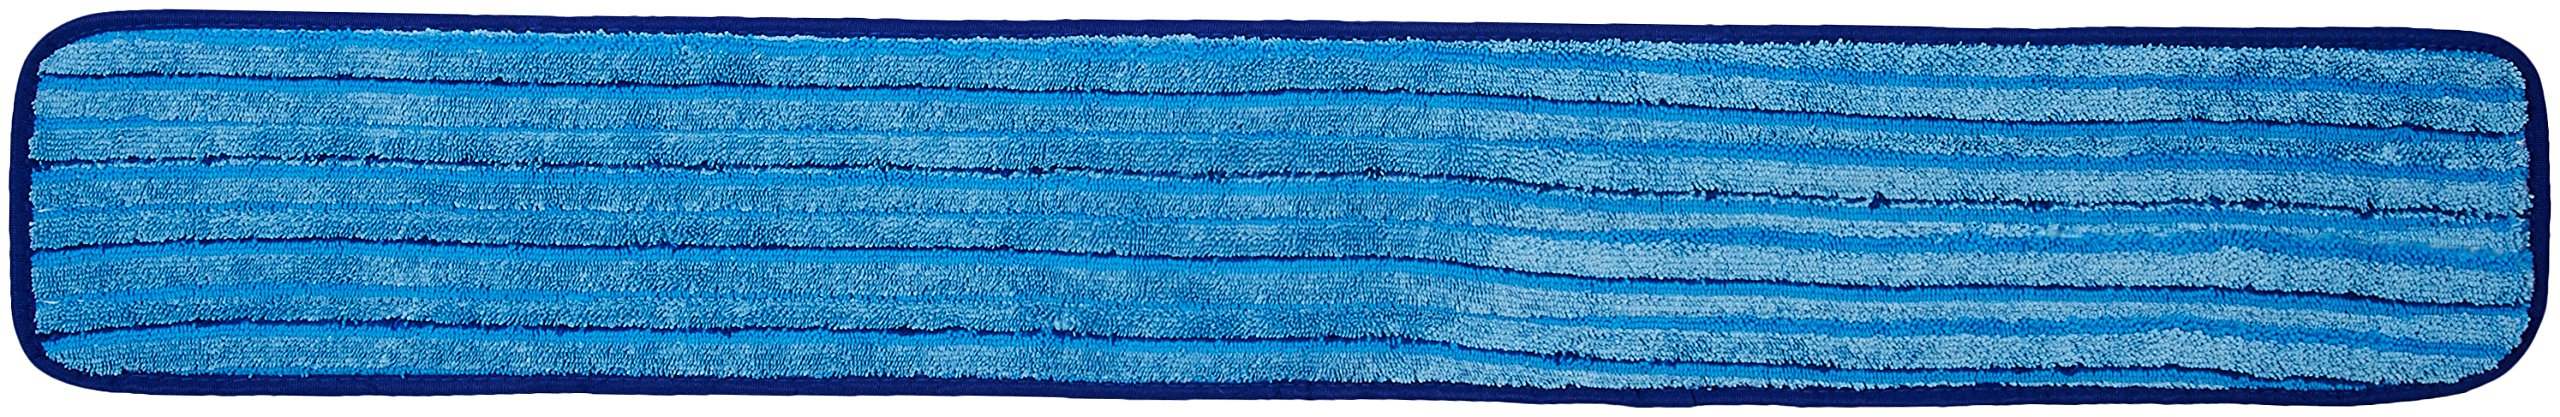 AmazonBasics Microfiber Damp Mop Cleaning Pad with Stripes, 36 Inch, 12-Pack